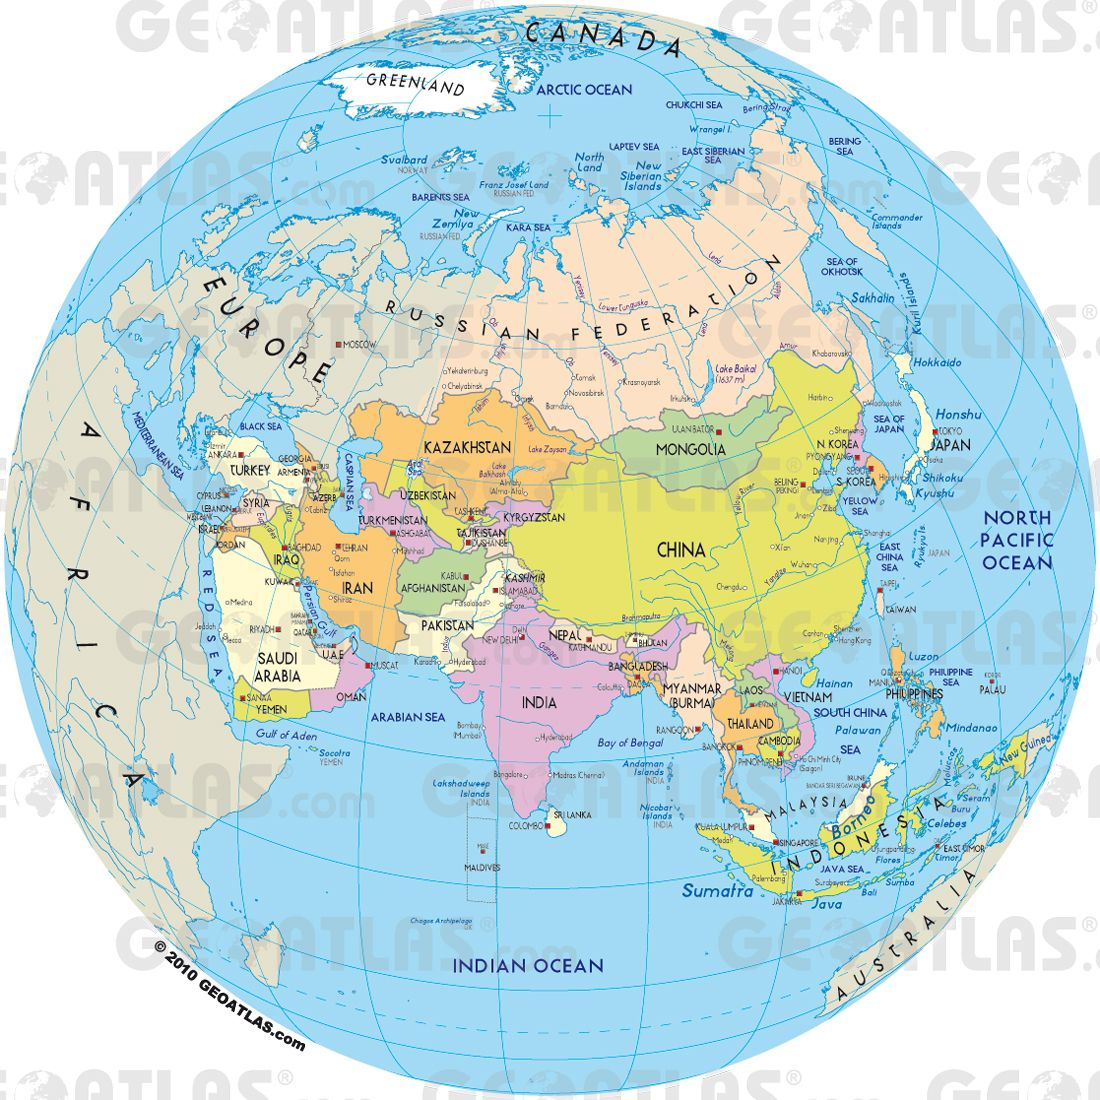 Asia On A Map Of The World.Map Of Asia Maps Asia Map World Globes Map Globe